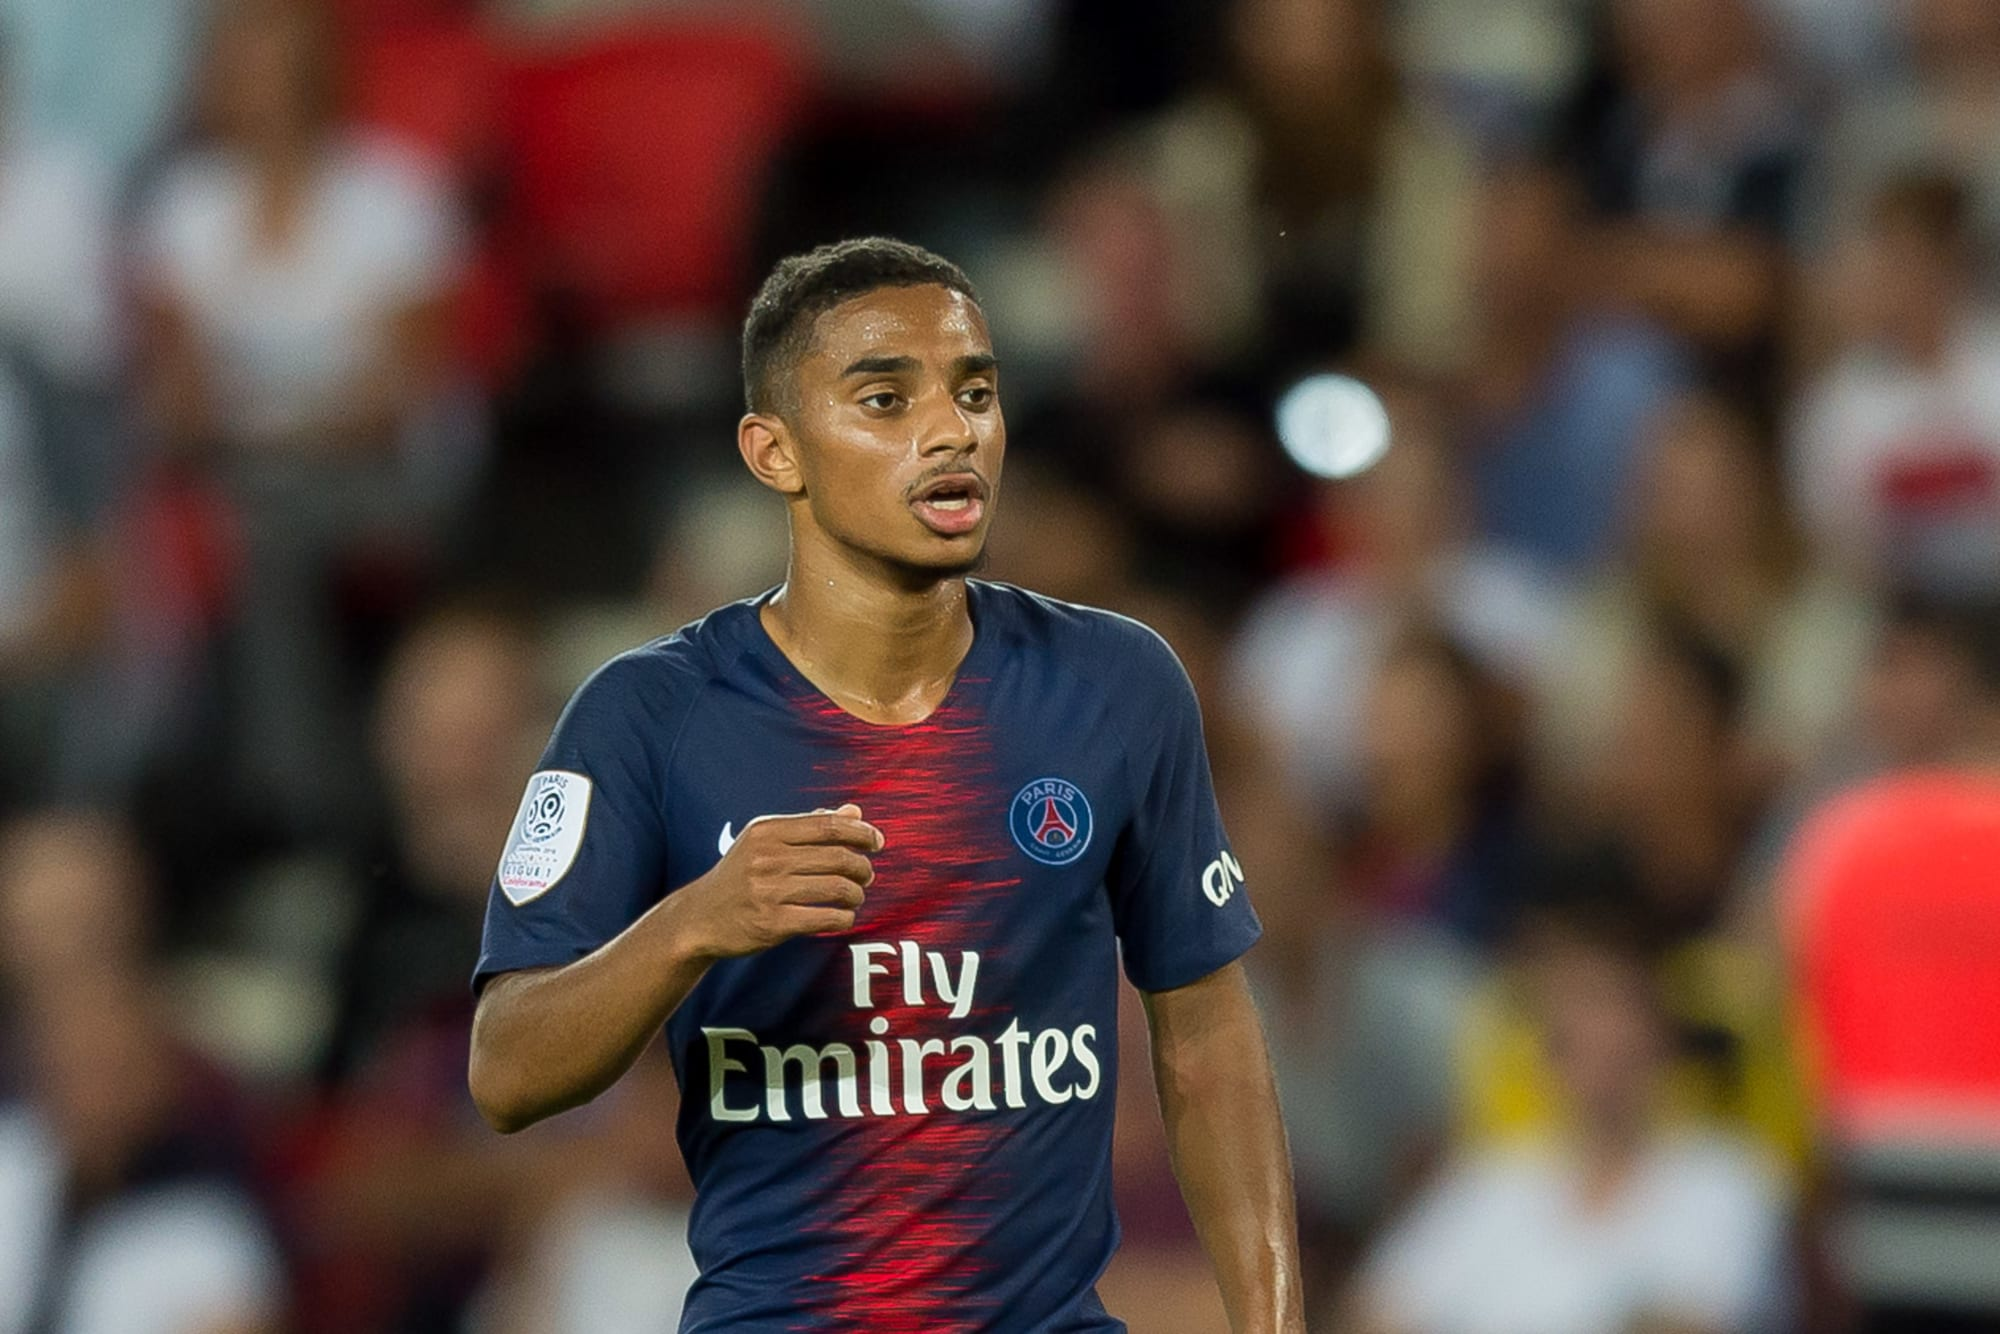 Everton keen on PSG defender but refuse to meet £26 million asking price